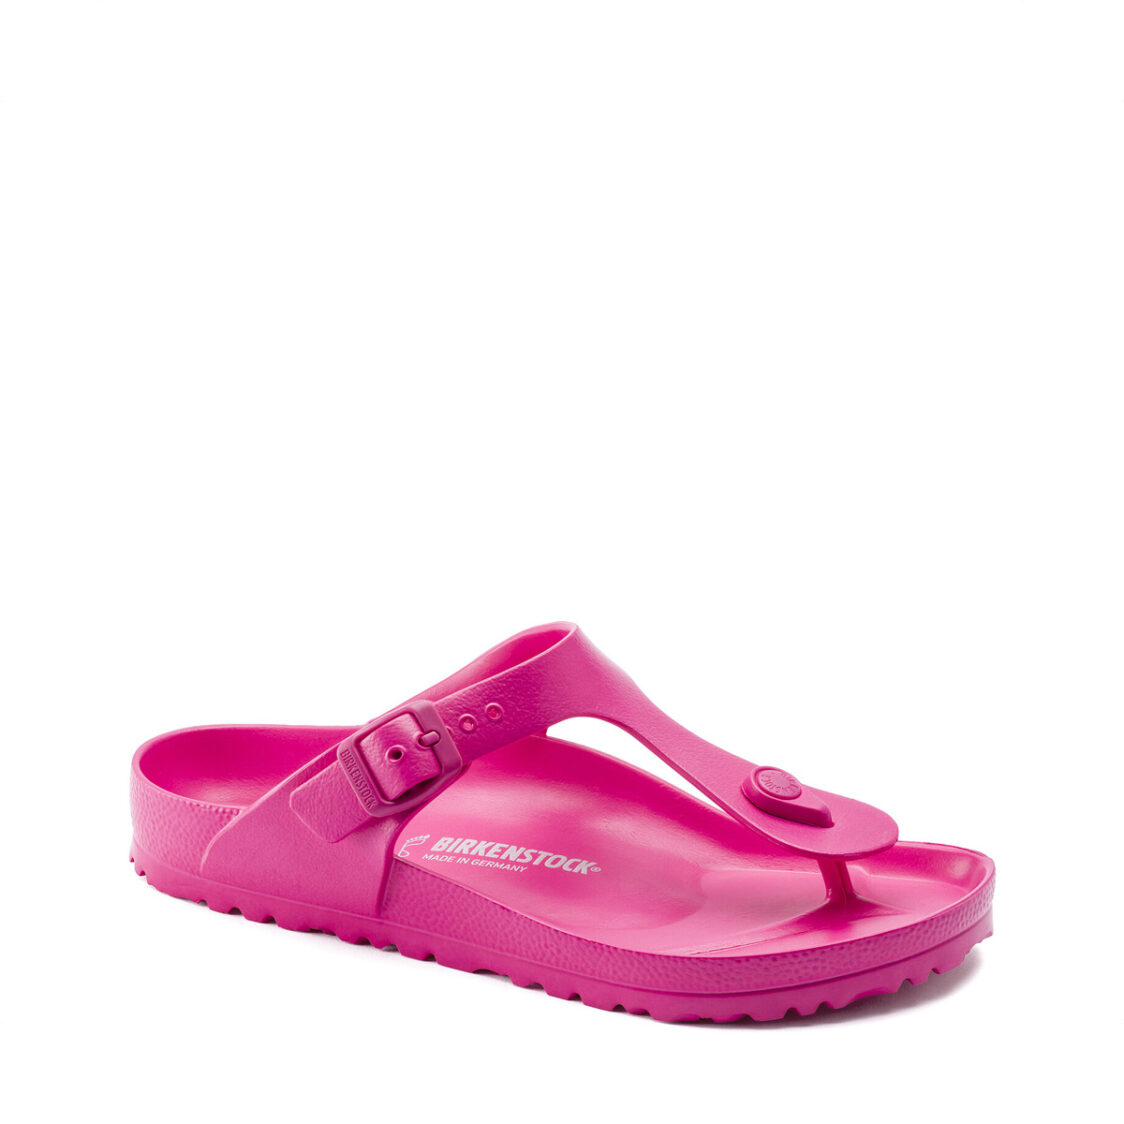 Birkenstock Gizeh EVA Womens Regular Width Sandals Beetroot Purple